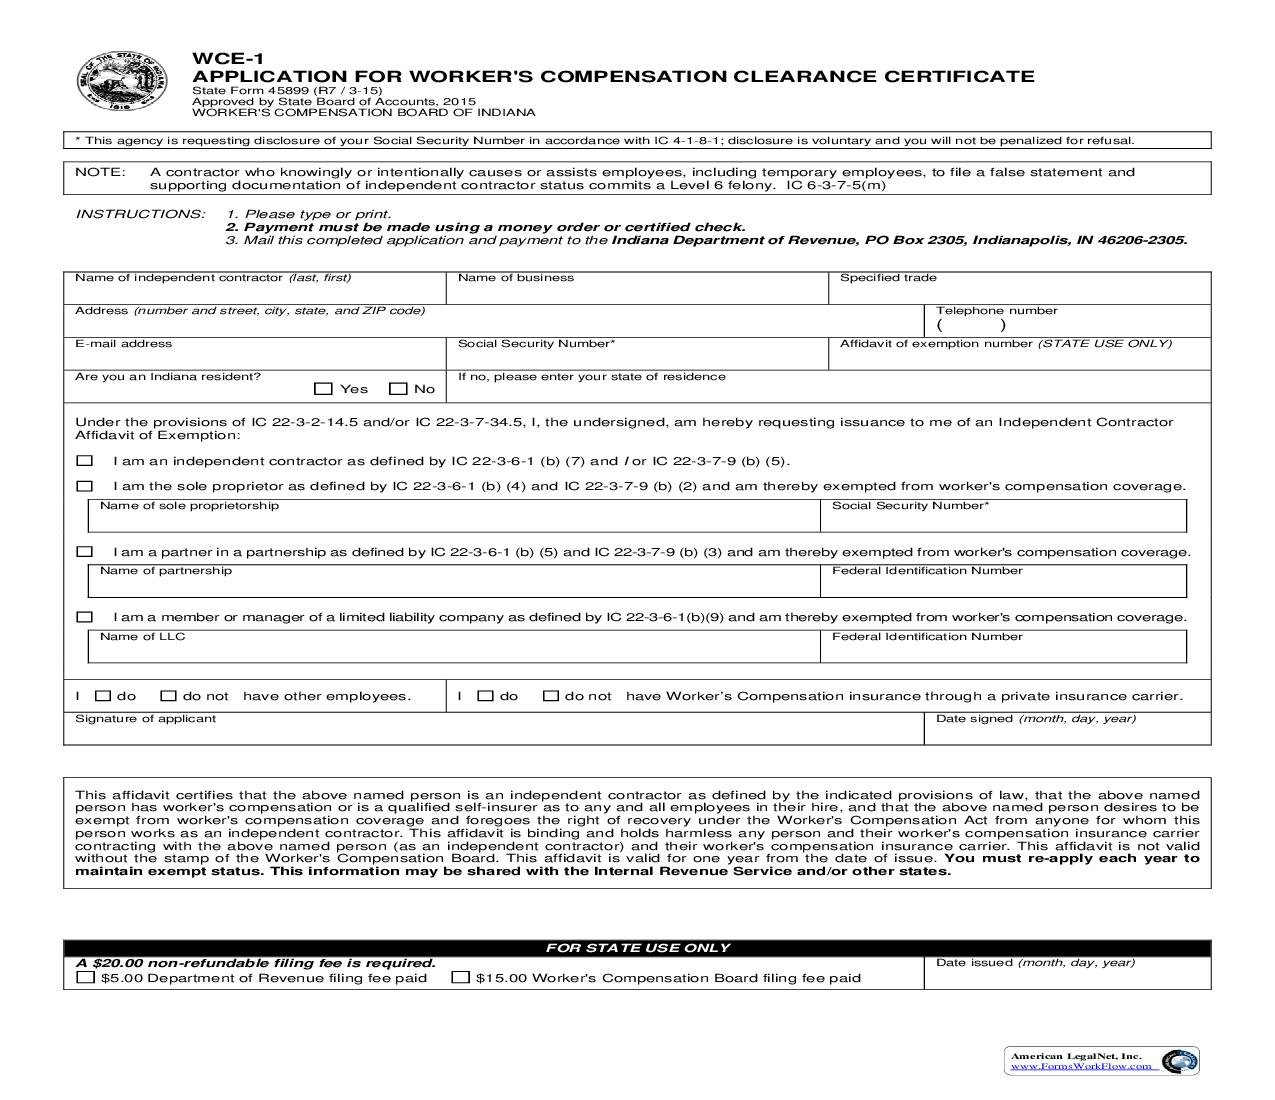 Application For Workers Compensation Clearance Certificate  {WCE-1} |  | Indiana